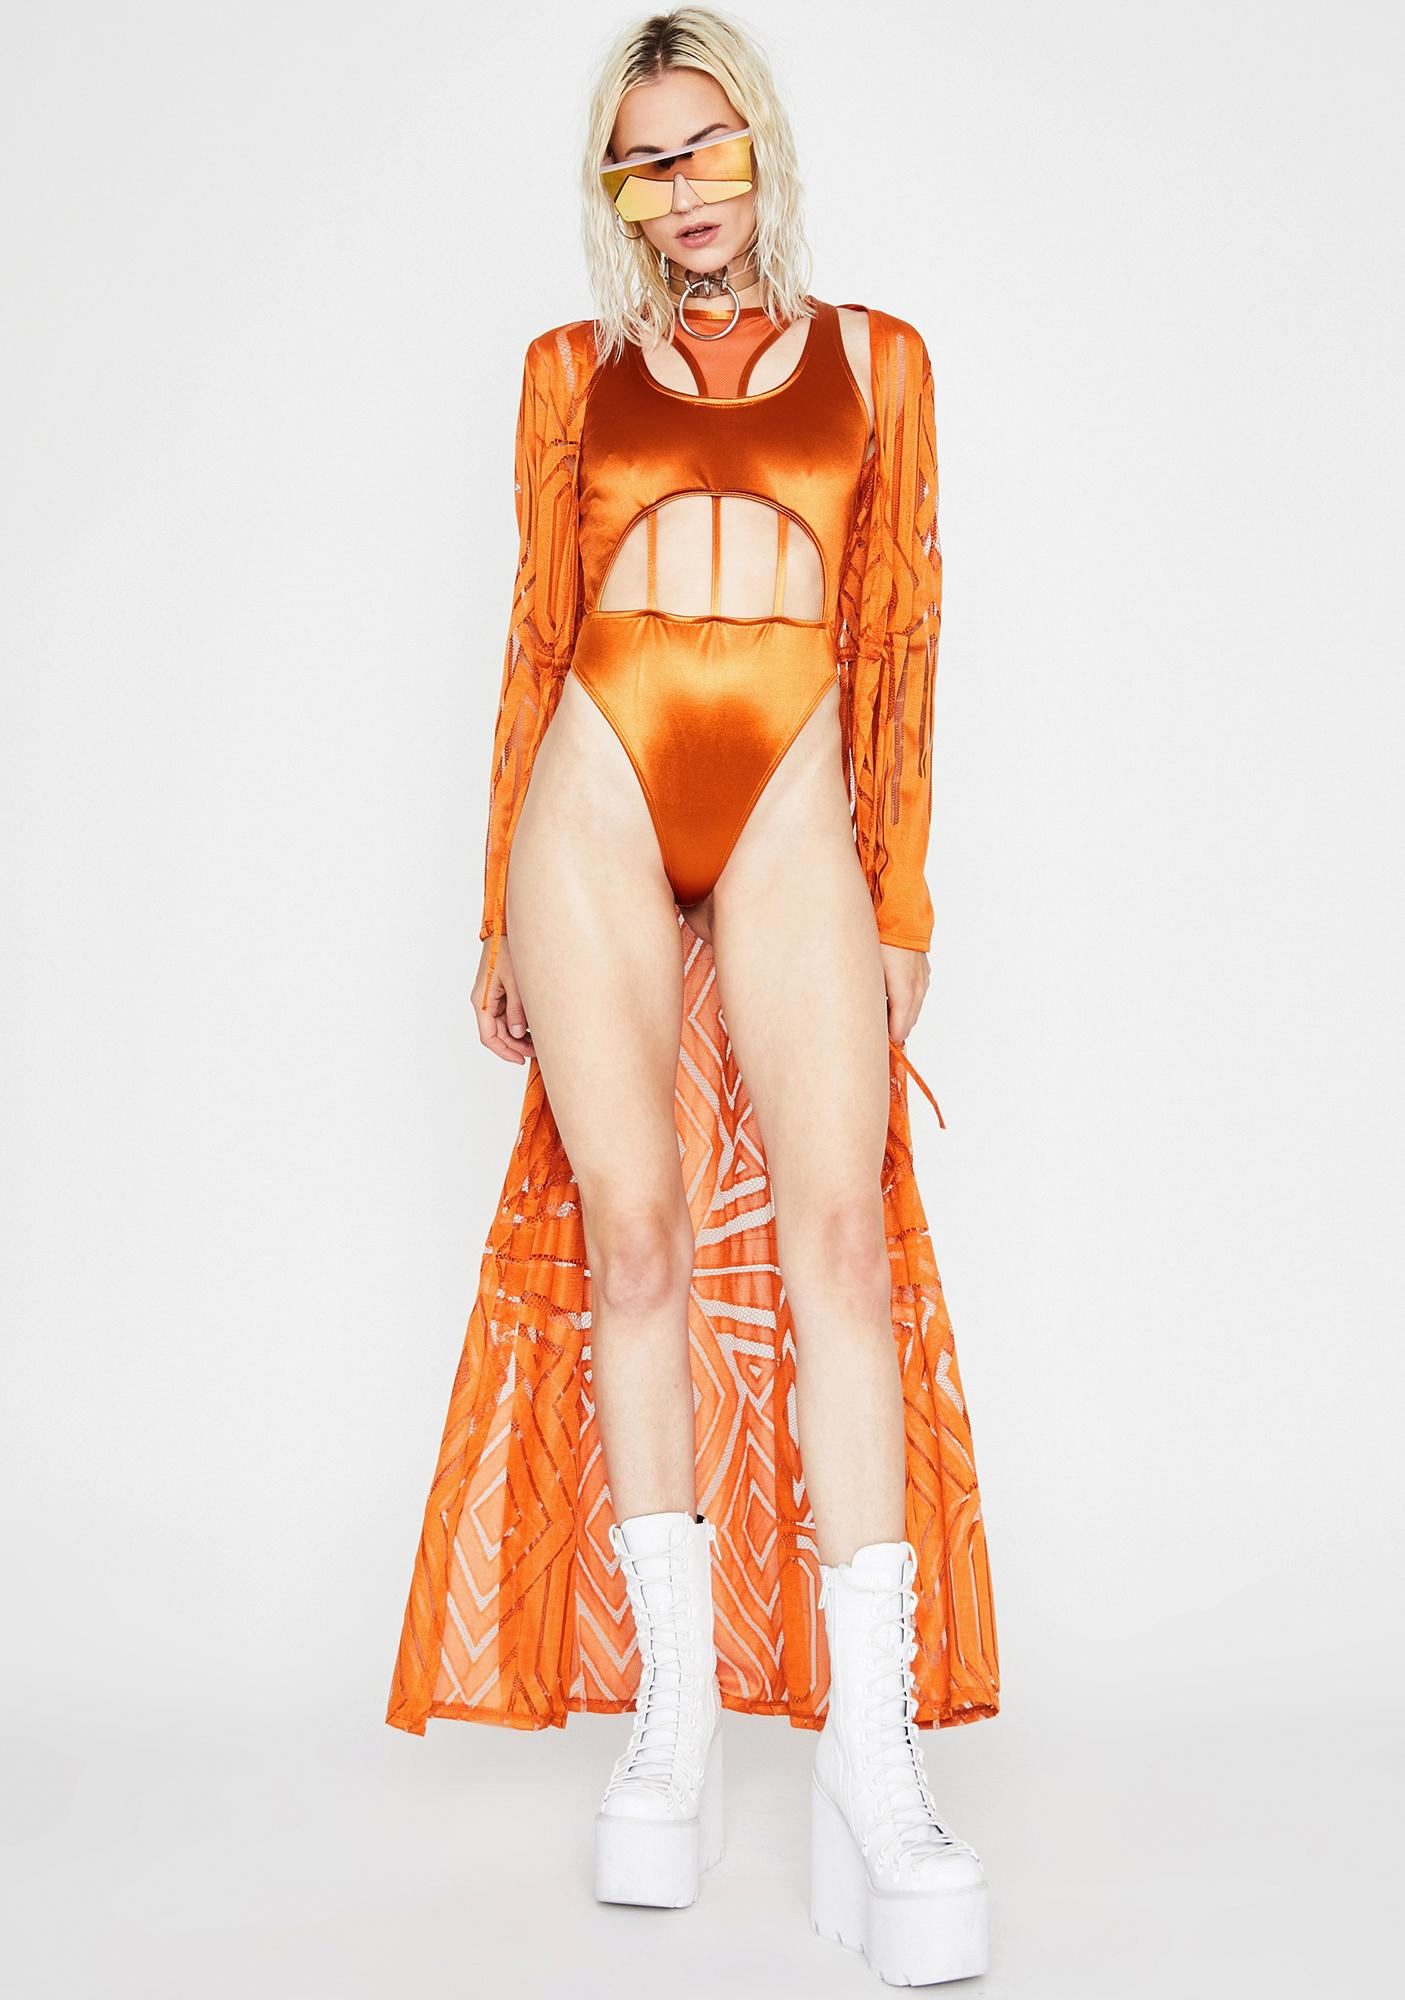 Caramel Cage Fighter Cut Out Bodysuit